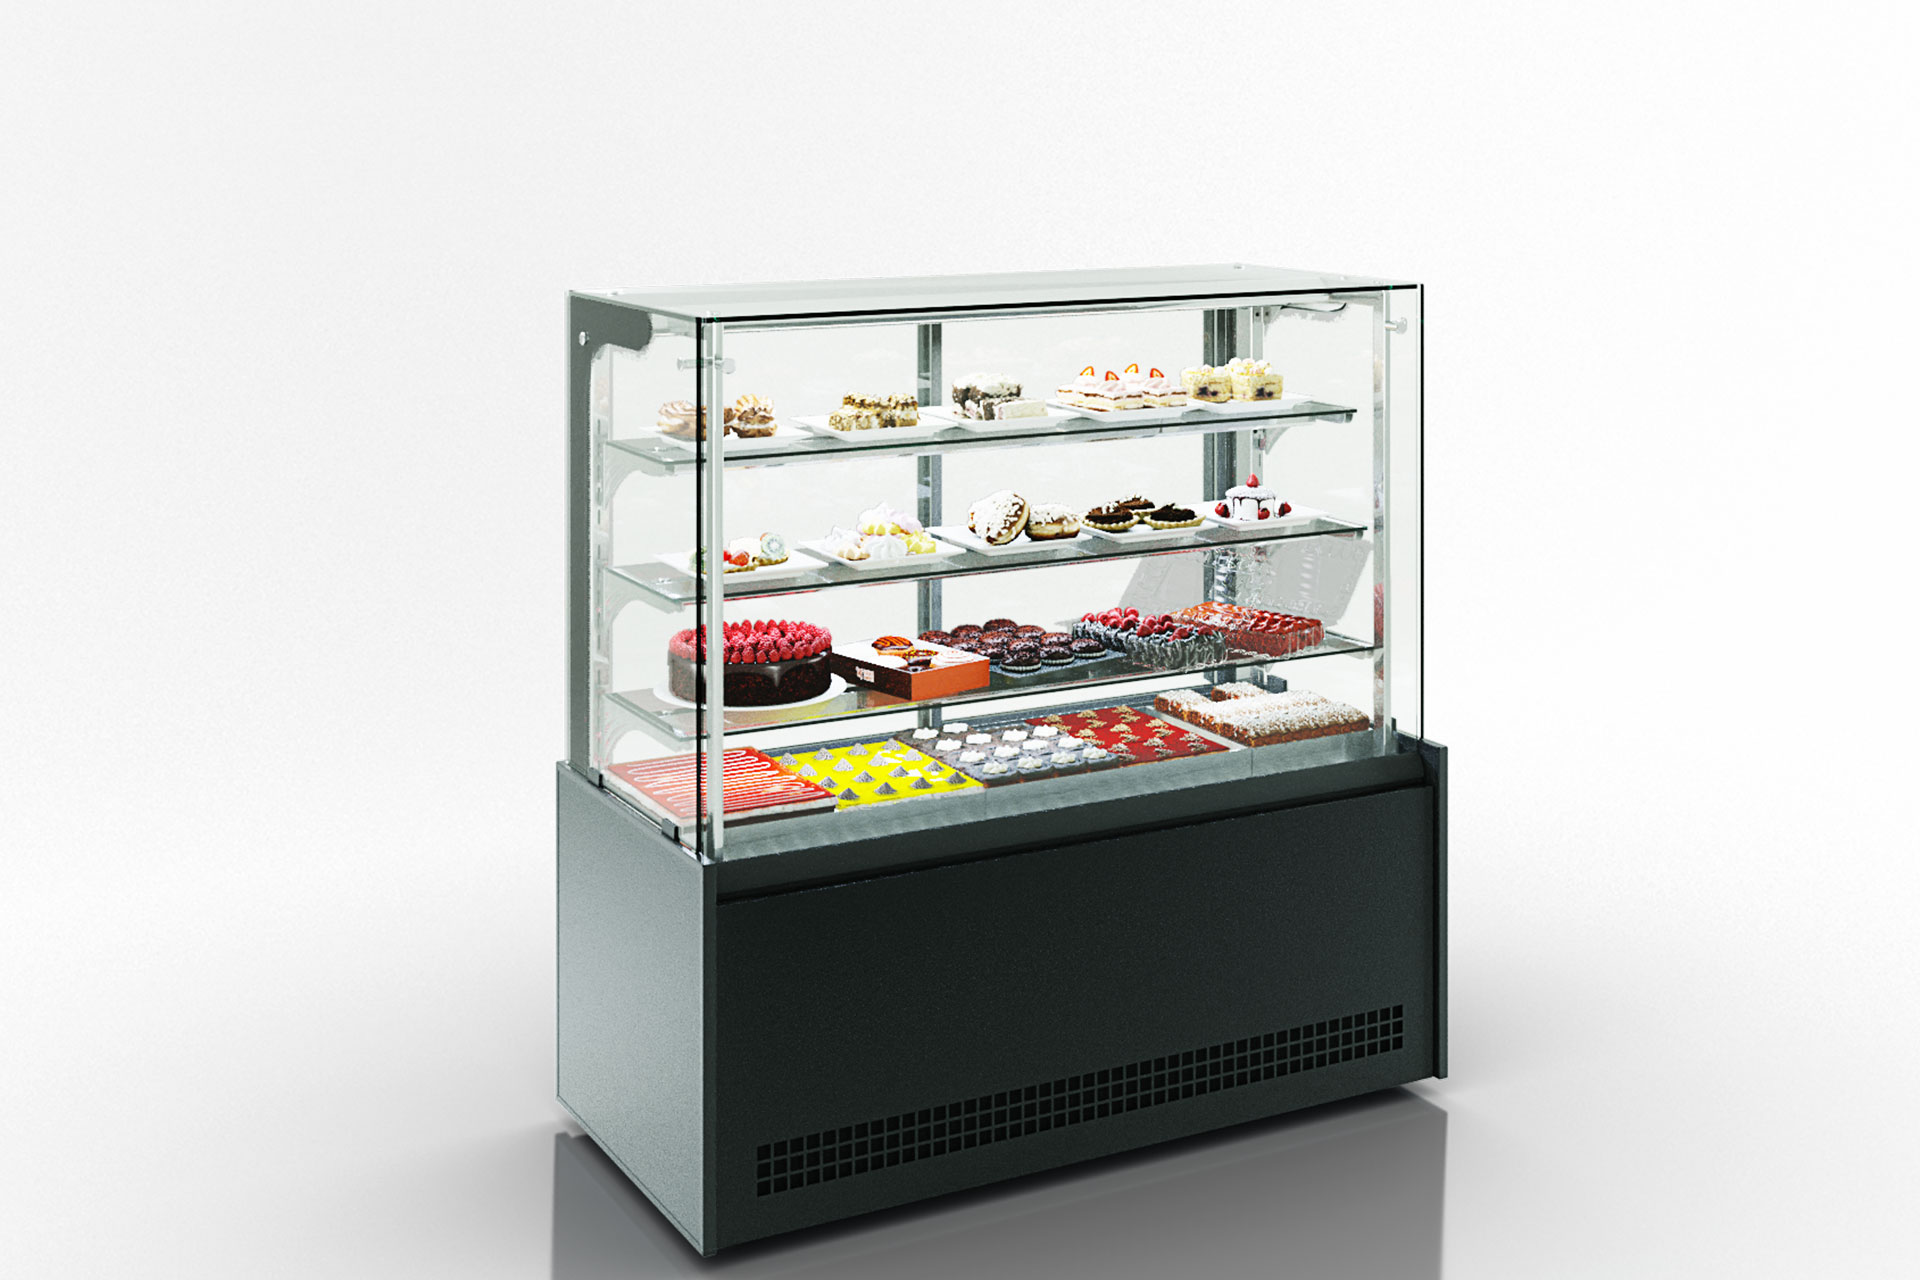 Confectionery counters Dakota AC 060 patisserie OS 130-DLA